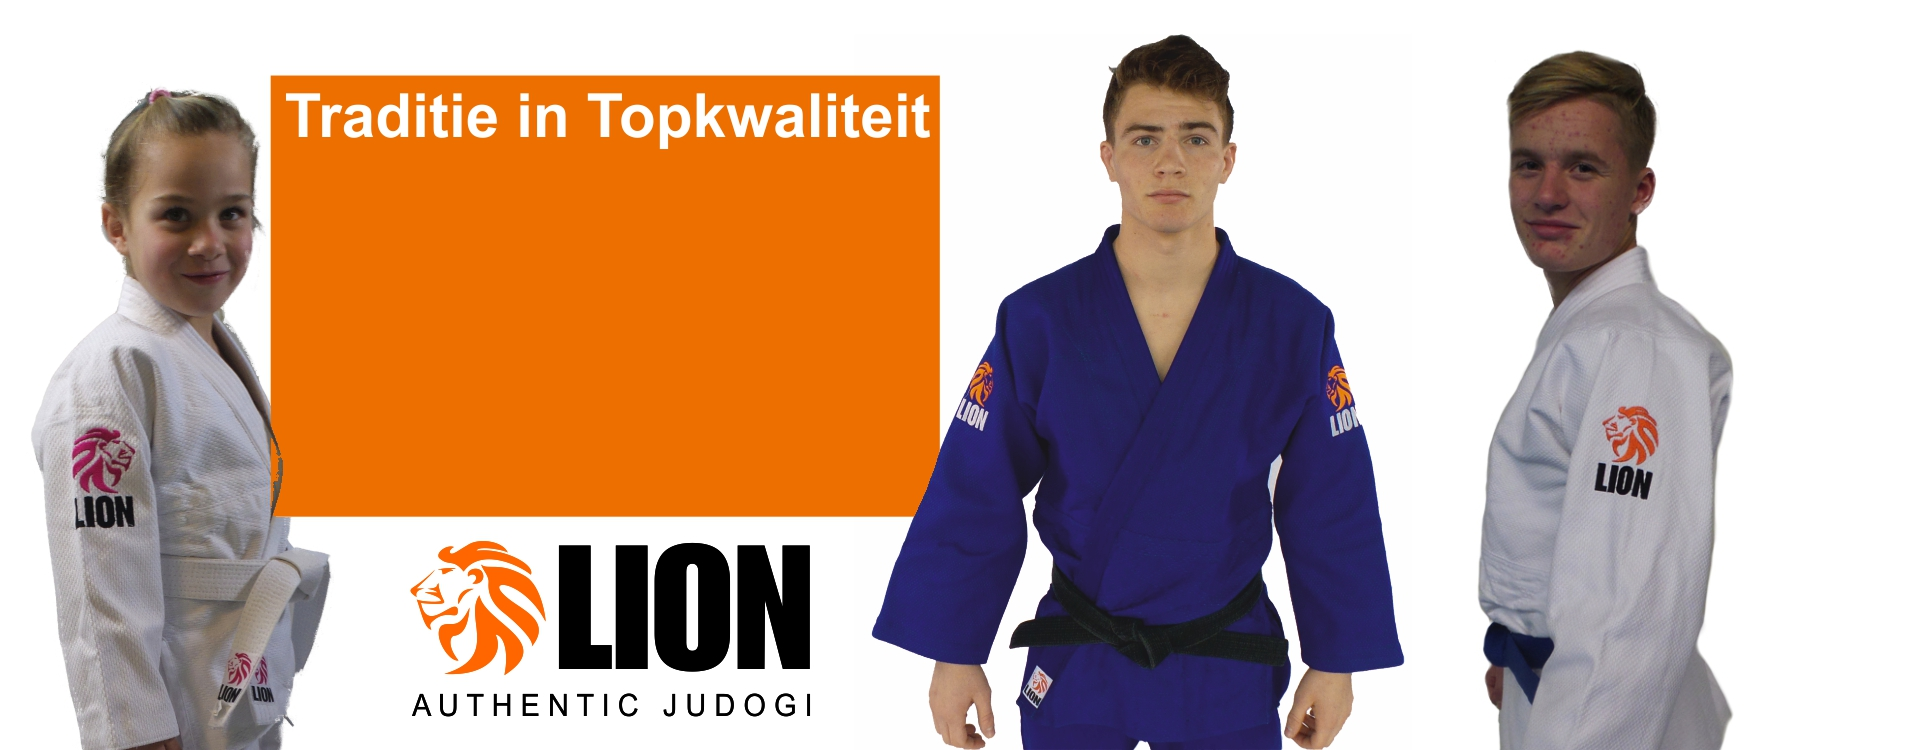 https://nieuwjudopak.nl/wp-content/uploads/2018/01/shop-home-gallery-banner-Lion-judogi-2018-judogi-collectie.jpg